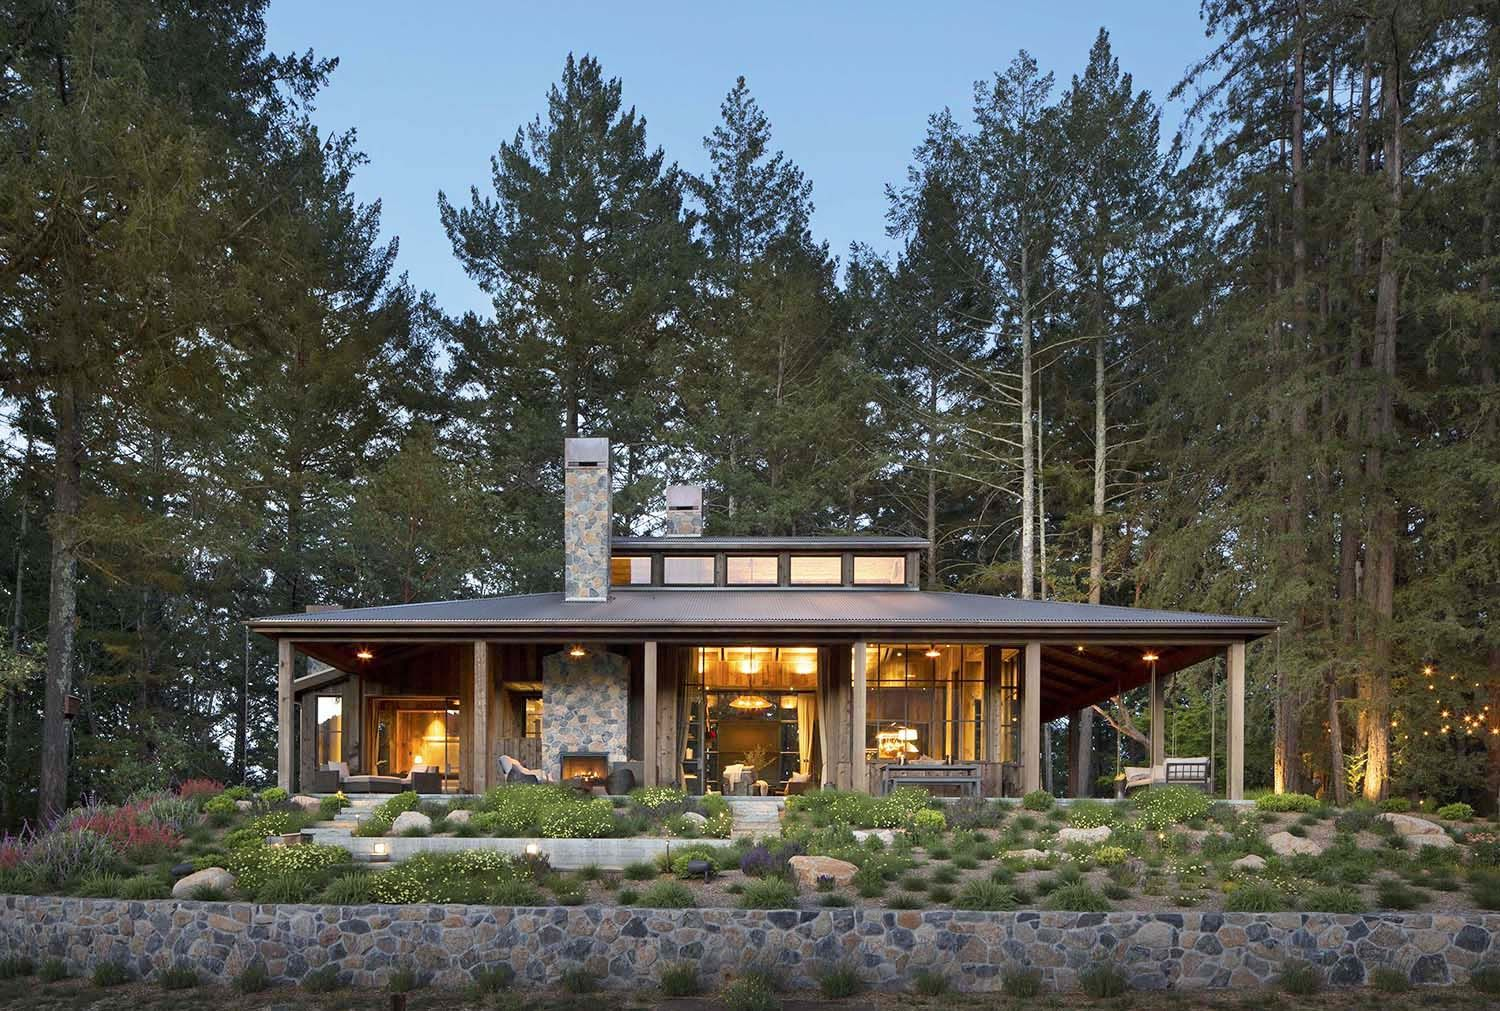 Farmhouse Architecture Features Small Woodsy Cabin Features A Cozy Farmhouse Style In Napa